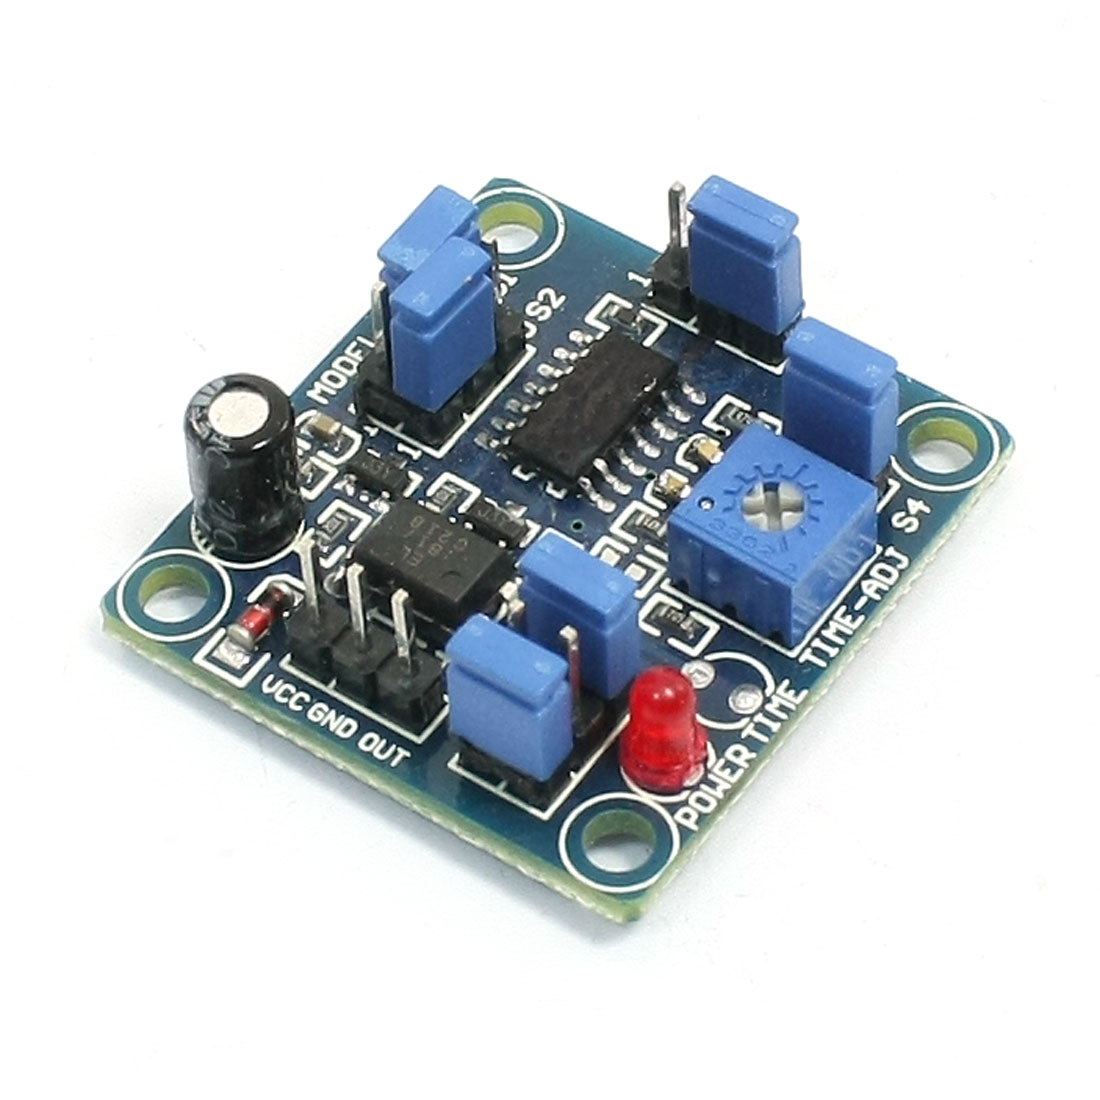 DC 4-12V Time Delay Multifunction Relay Module PCB Board